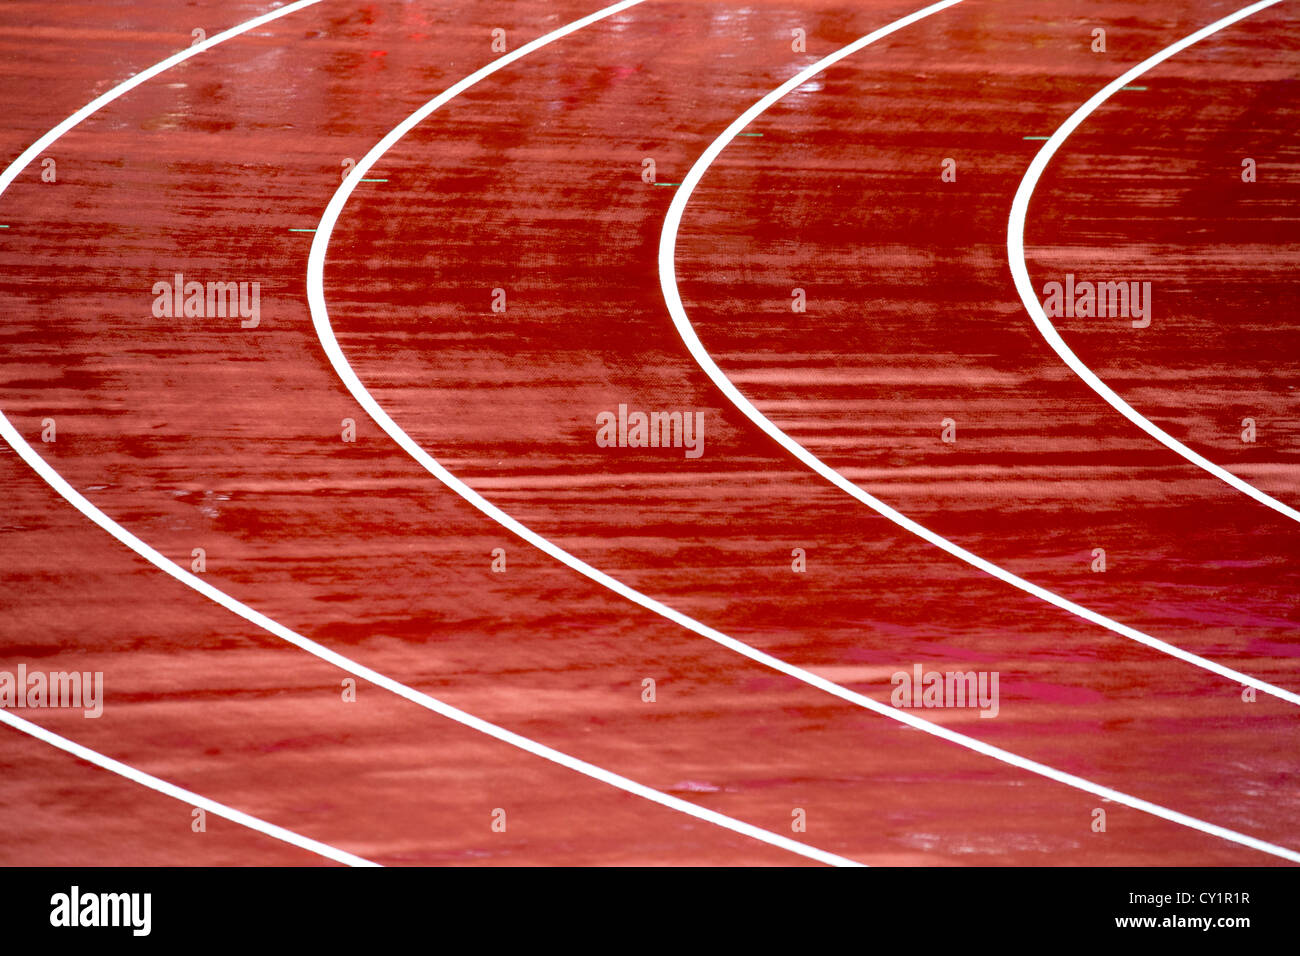 Lanes of track - Stock Image